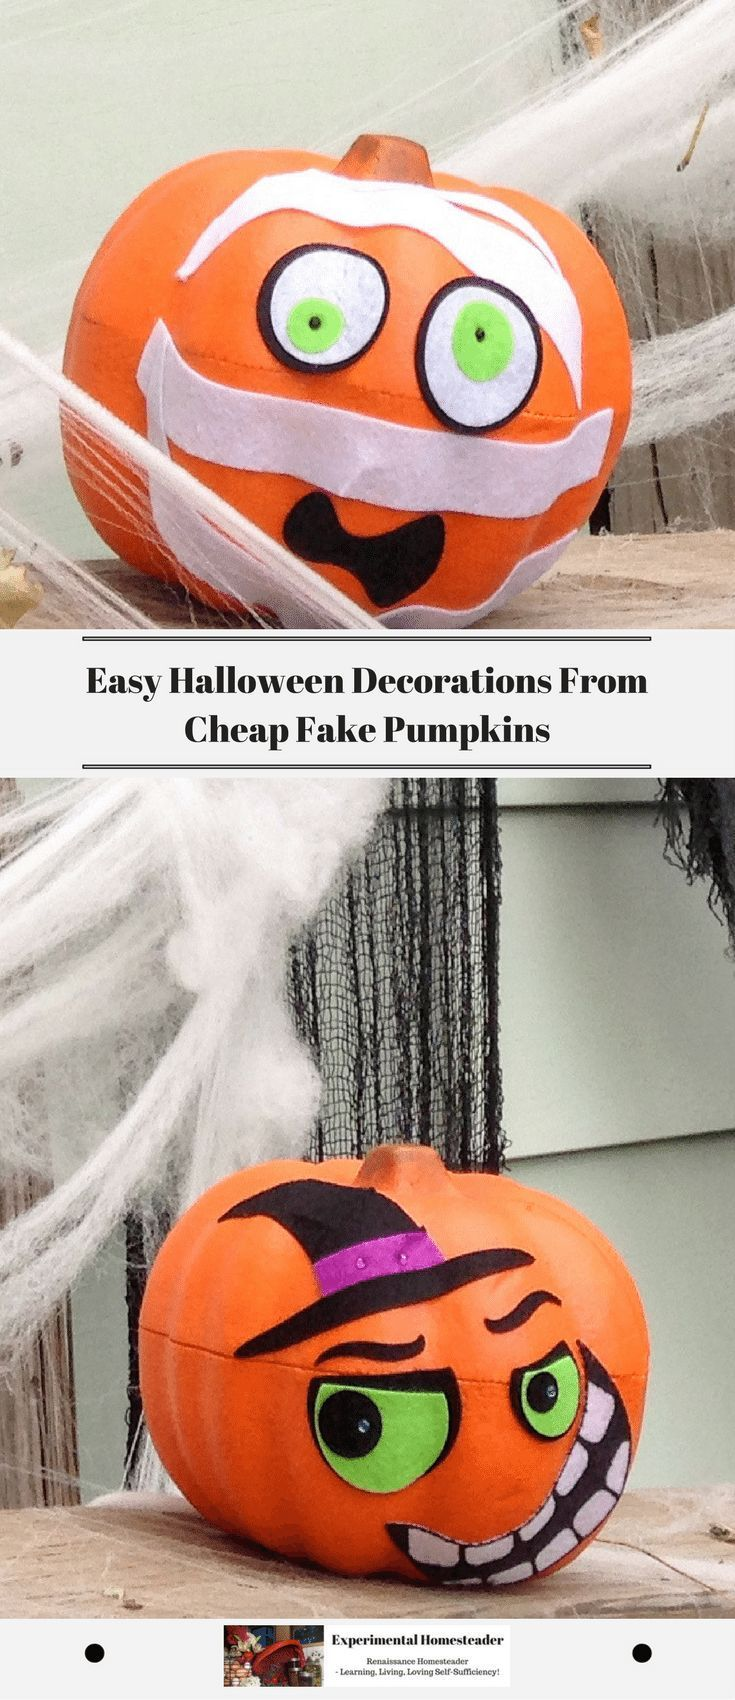 Yes, you can make easy Halloween decorations from those cheap fake pumpkins - and best of all they are perfect for kids to decorate. #easyHalloweendecorations #cheapfakepumpkins #DIYDecorIdeas